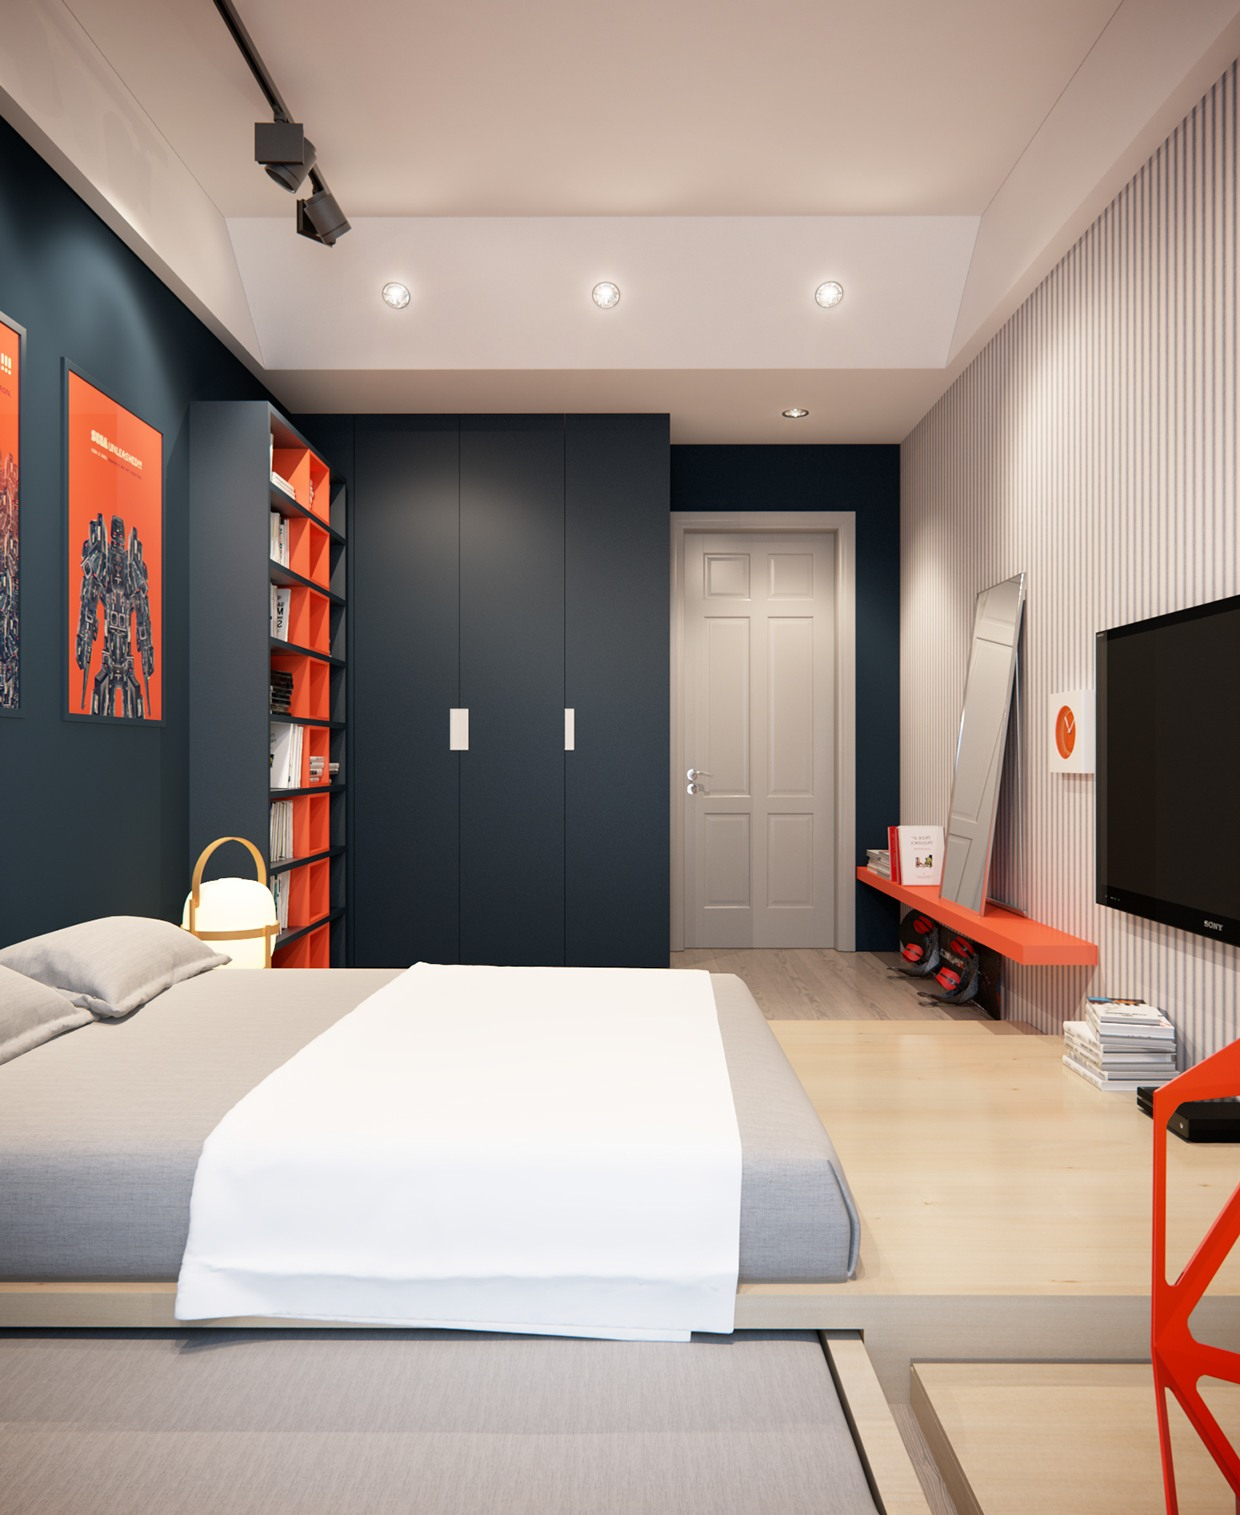 Boys bedroom design interior design ideas for Interior design ideas bedroom